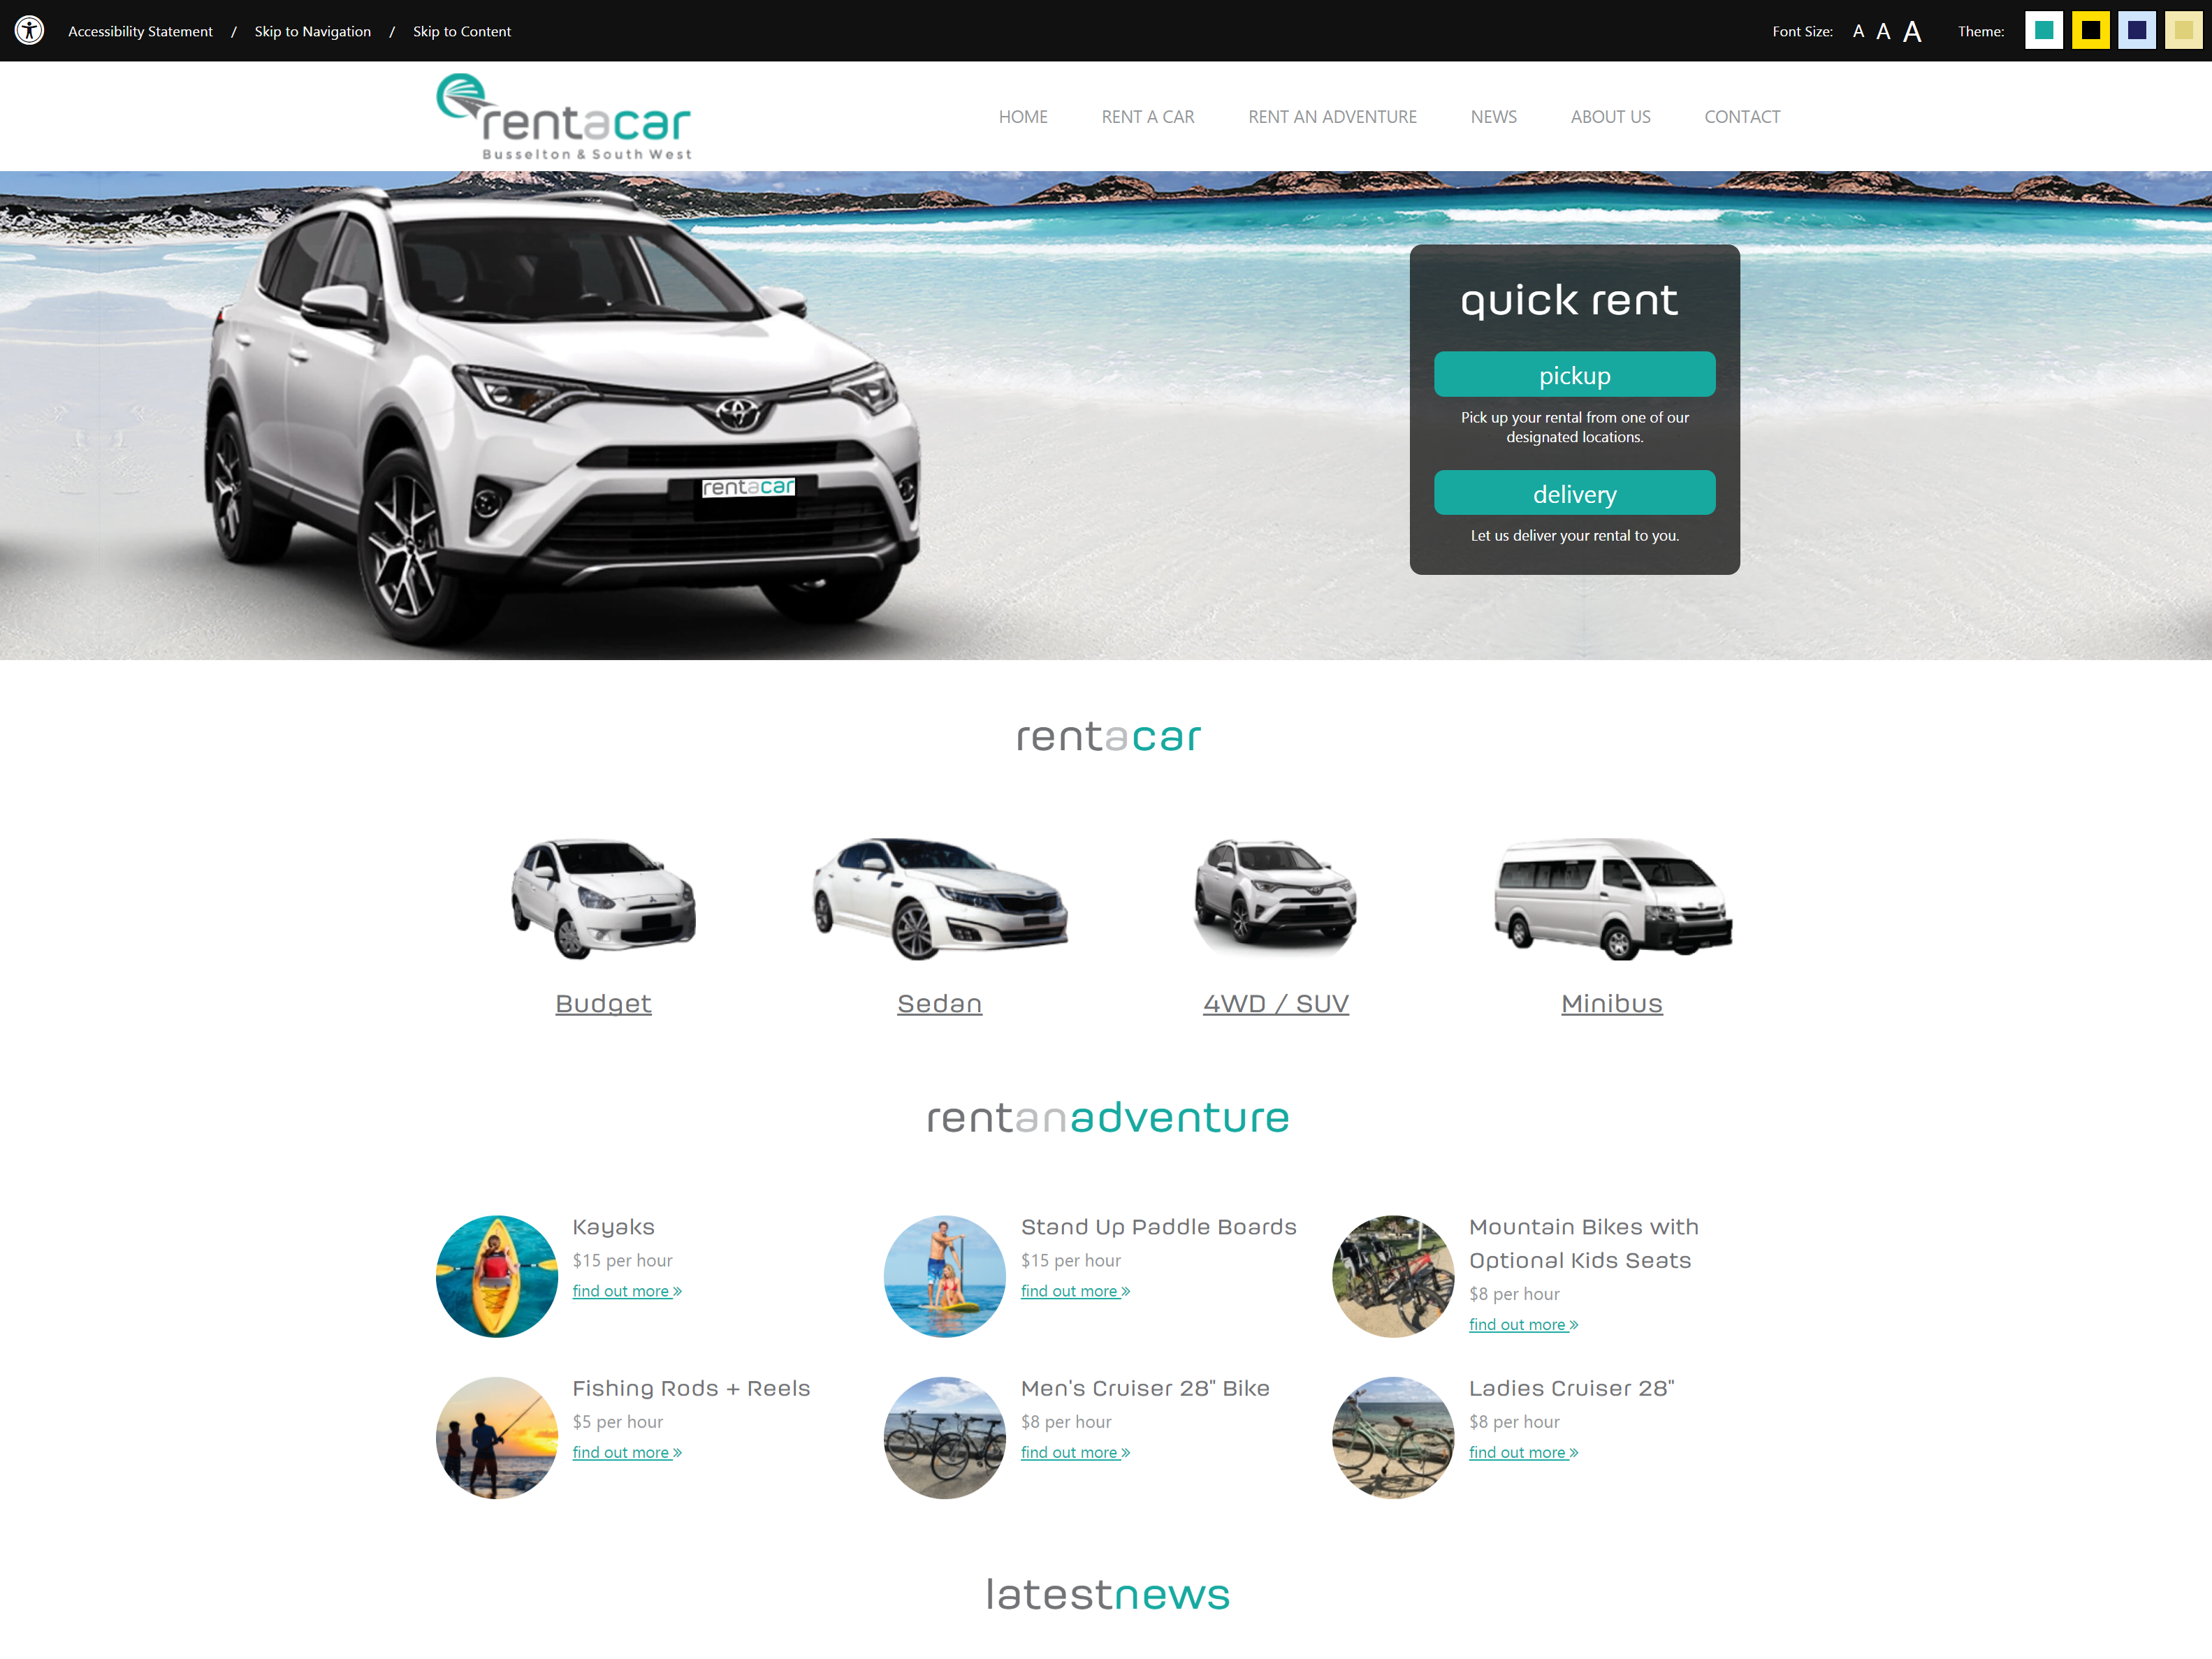 Screenshot of the Busselton & South West Rentacar Website